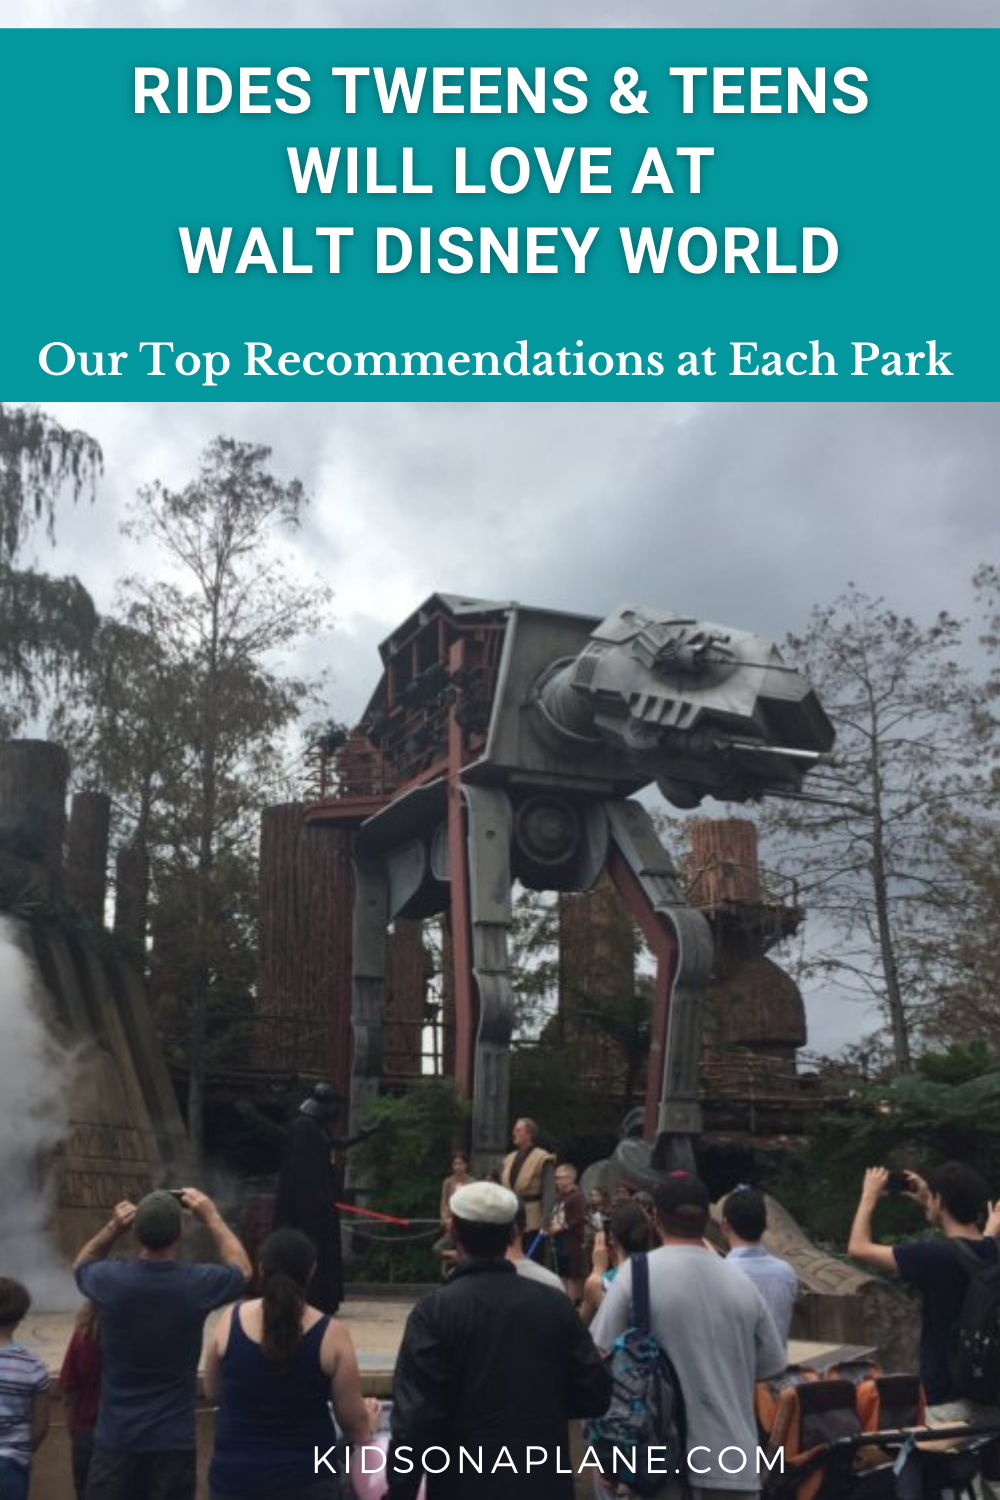 Best Rides at Disney World Parks for Tweens and Teens - Read about our top 12 picks